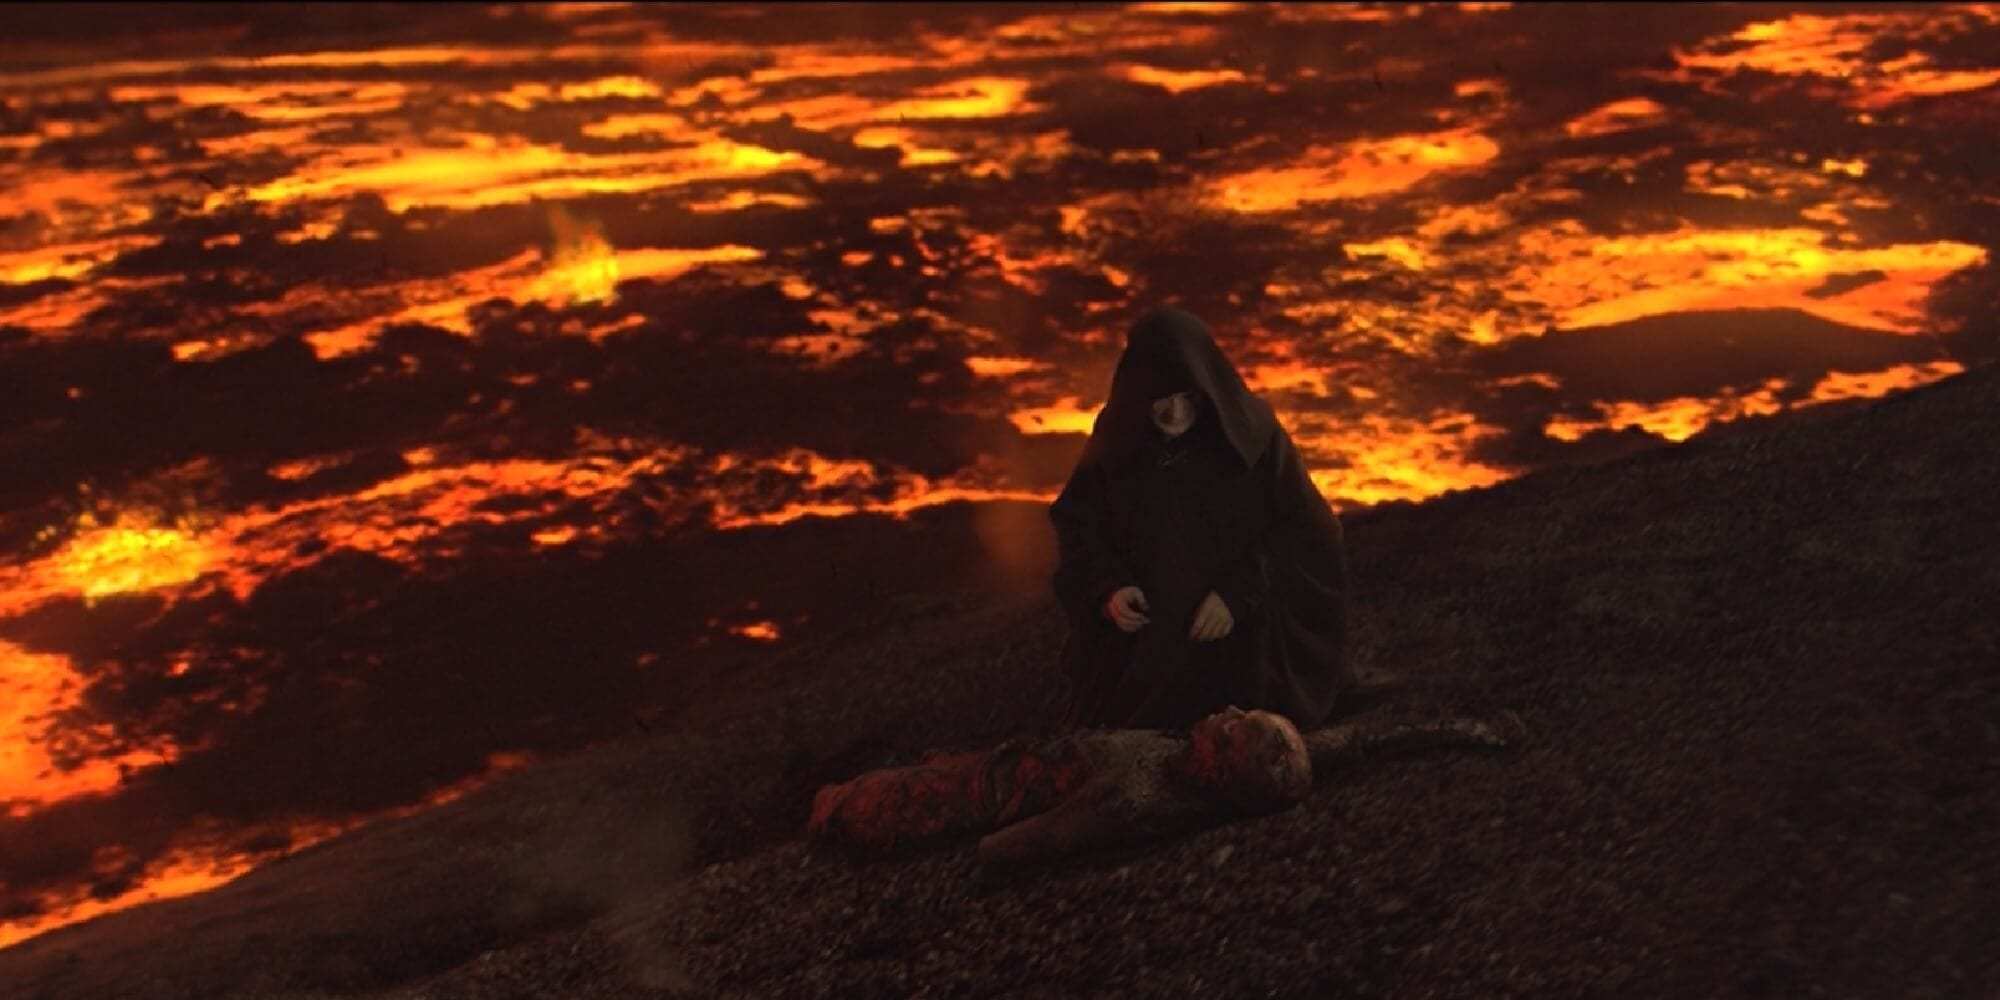 Star Wars Day Revenge of the Fifth Palpatine Anakin Mustafar Featured